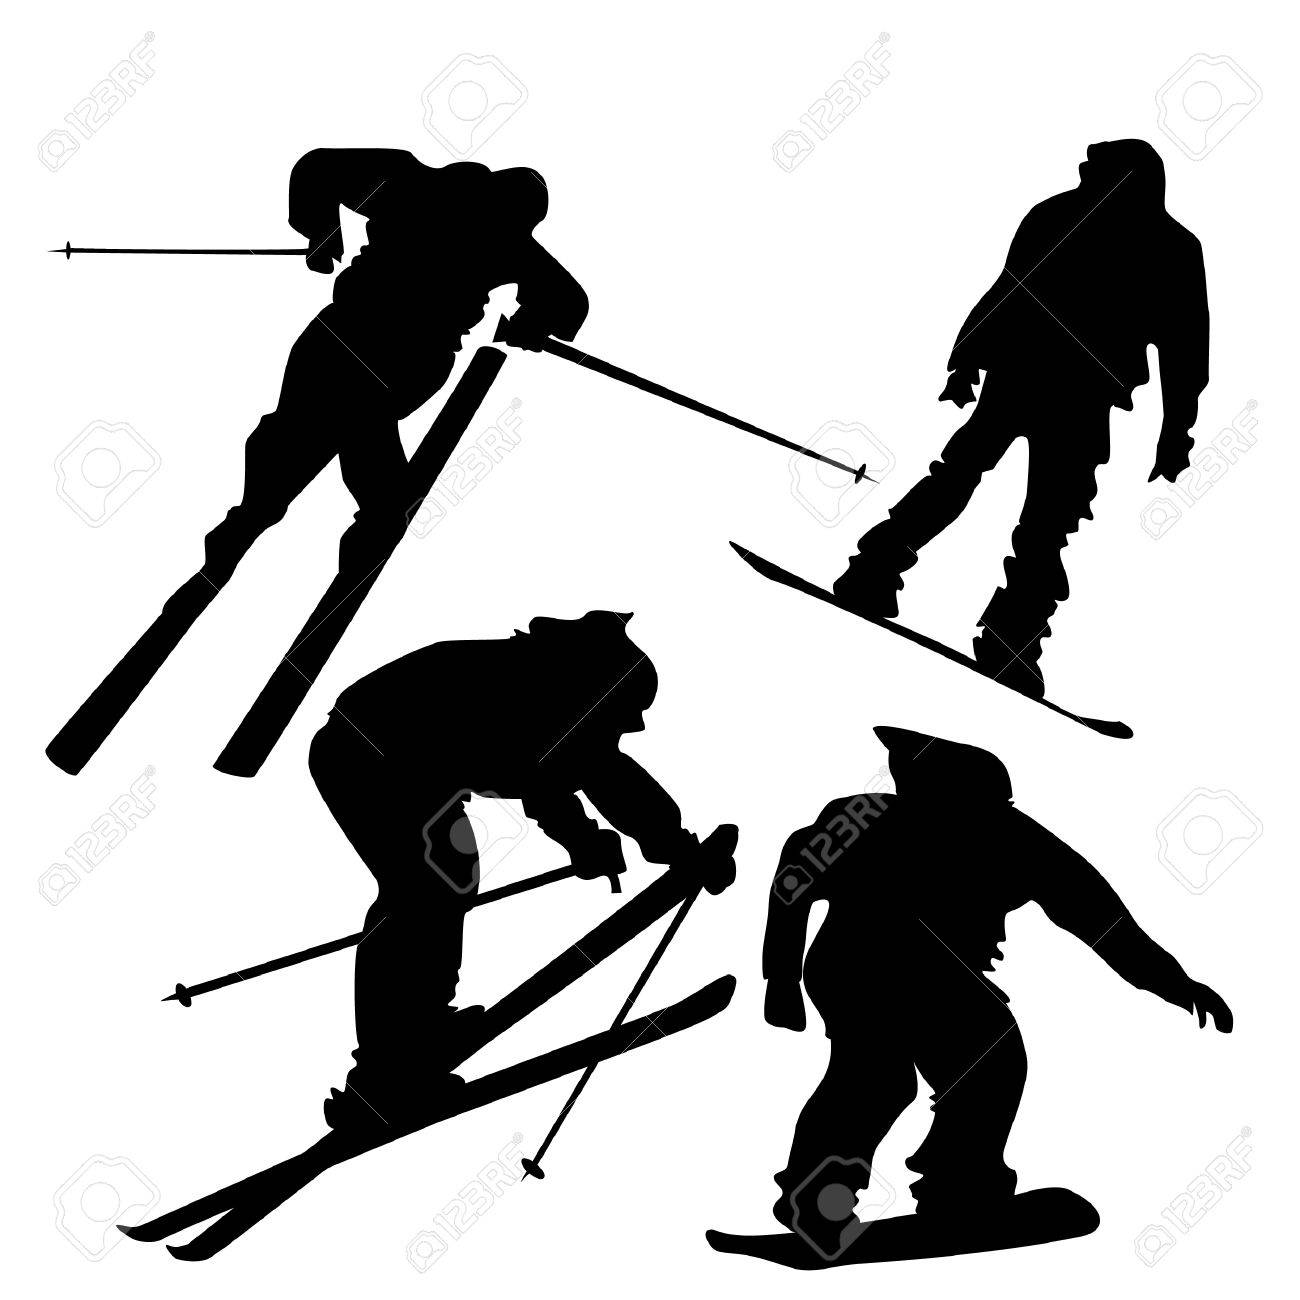 4 silhouettes of skiers and snowboarders in action. Stock Vector - 6226110